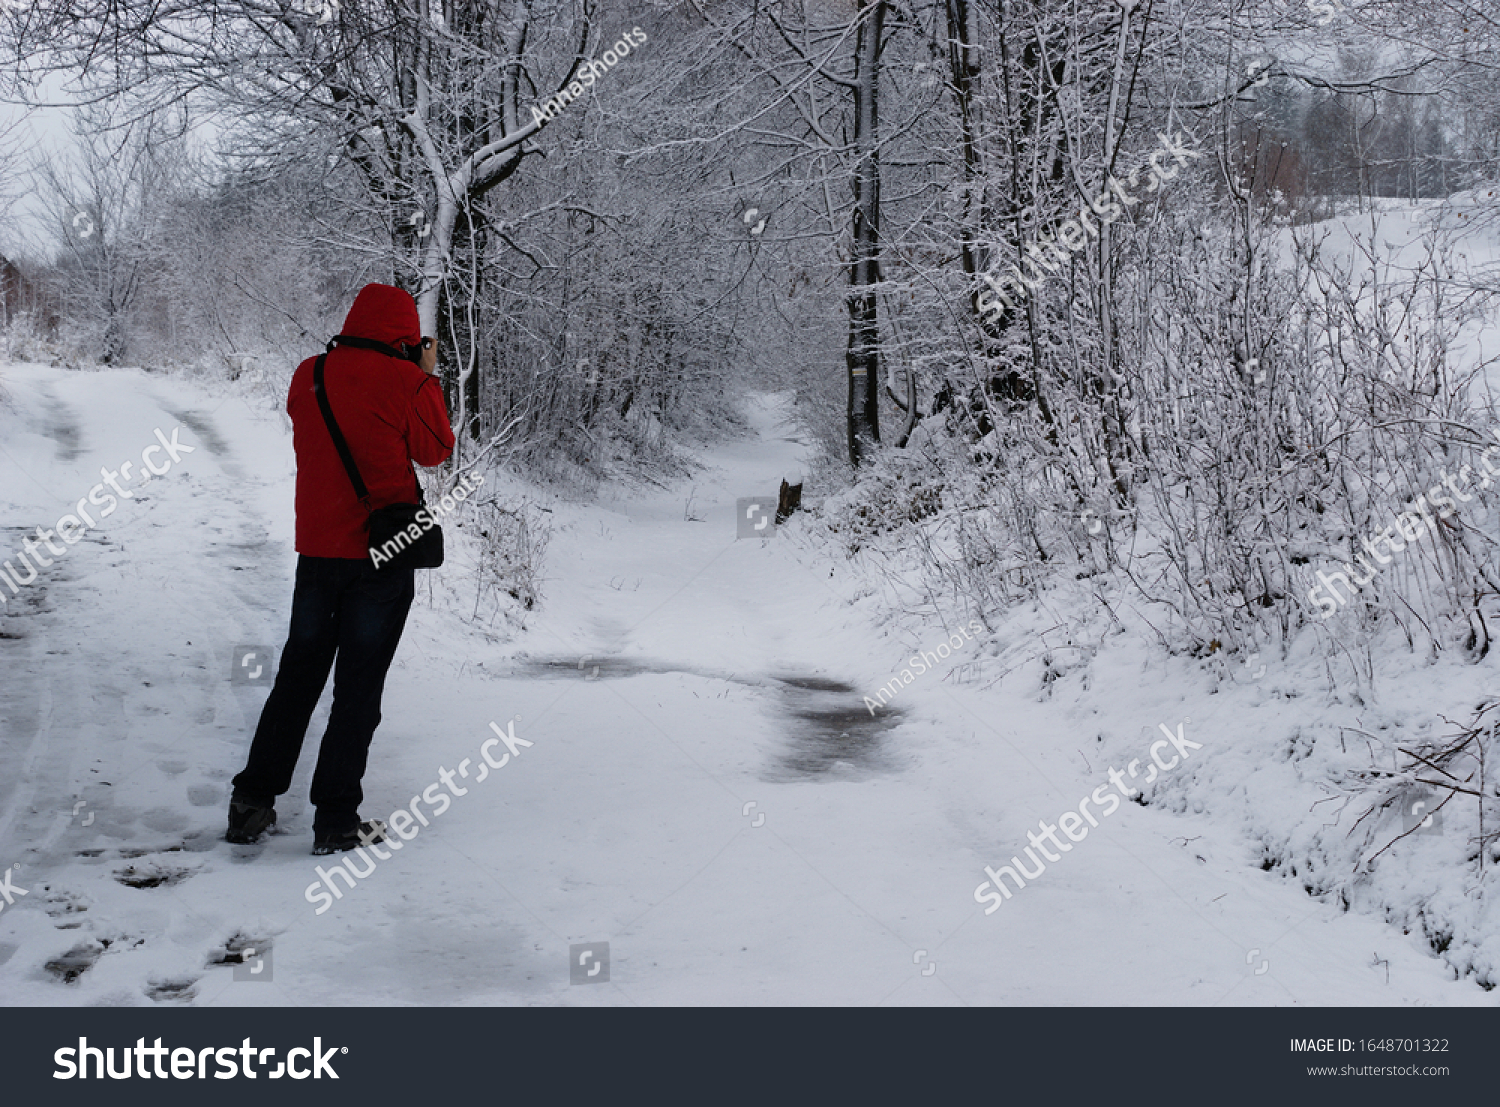 stock-photo-forest-snowy-road-snow-cover